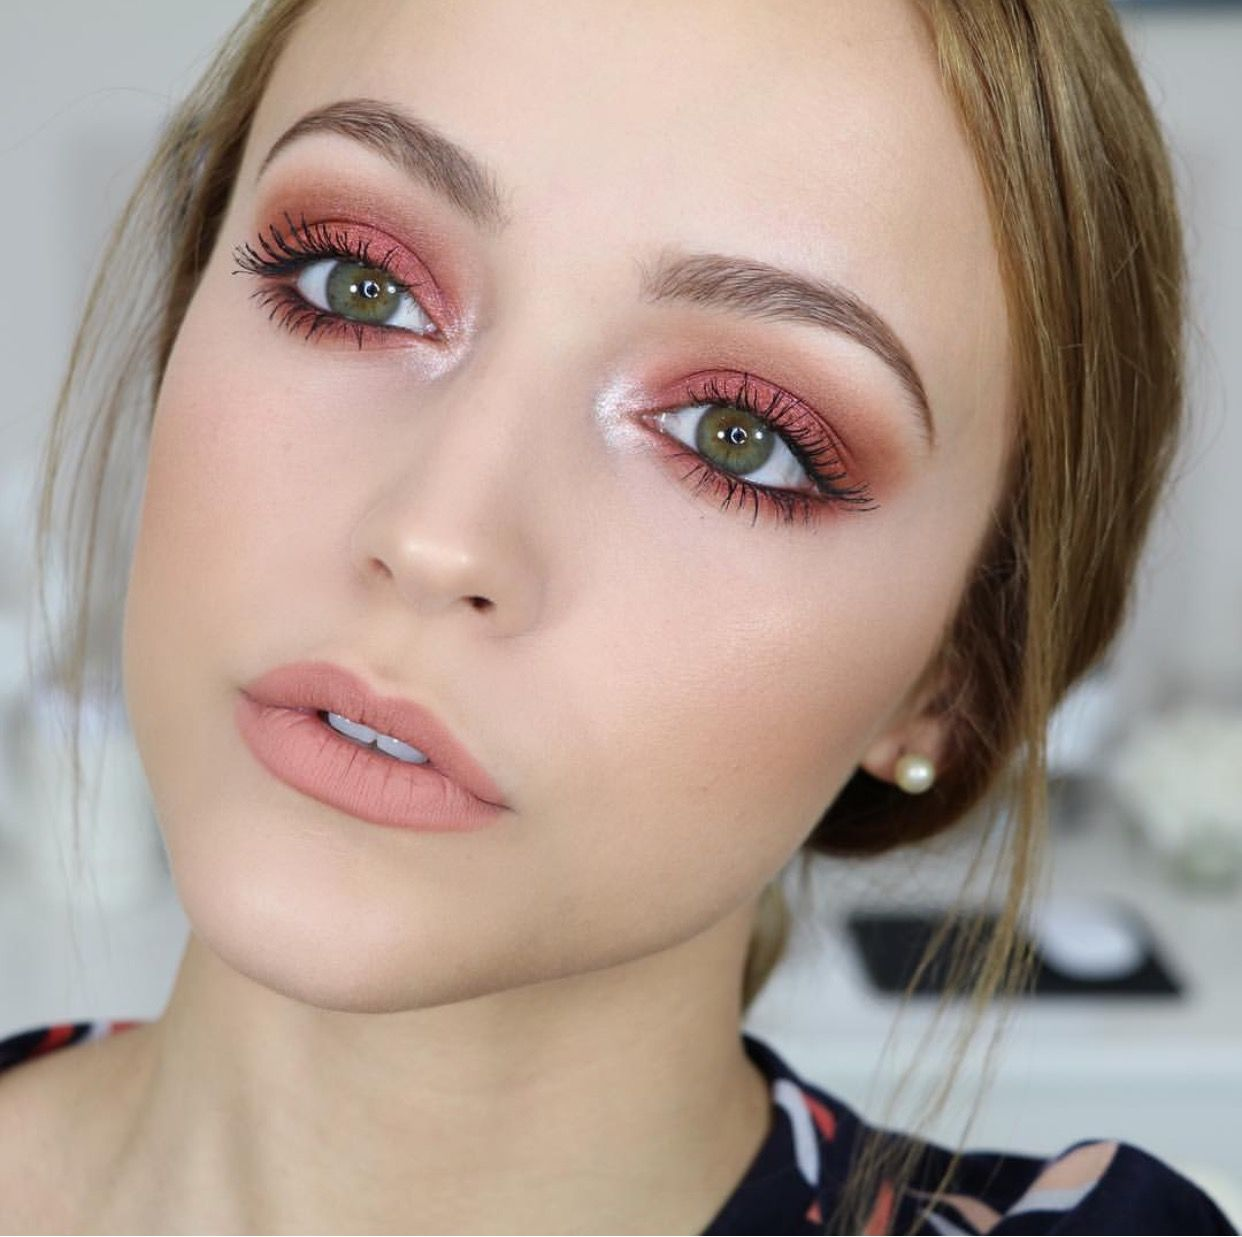 pin by mina hishmeh on makeup | makeup looks for green eyes